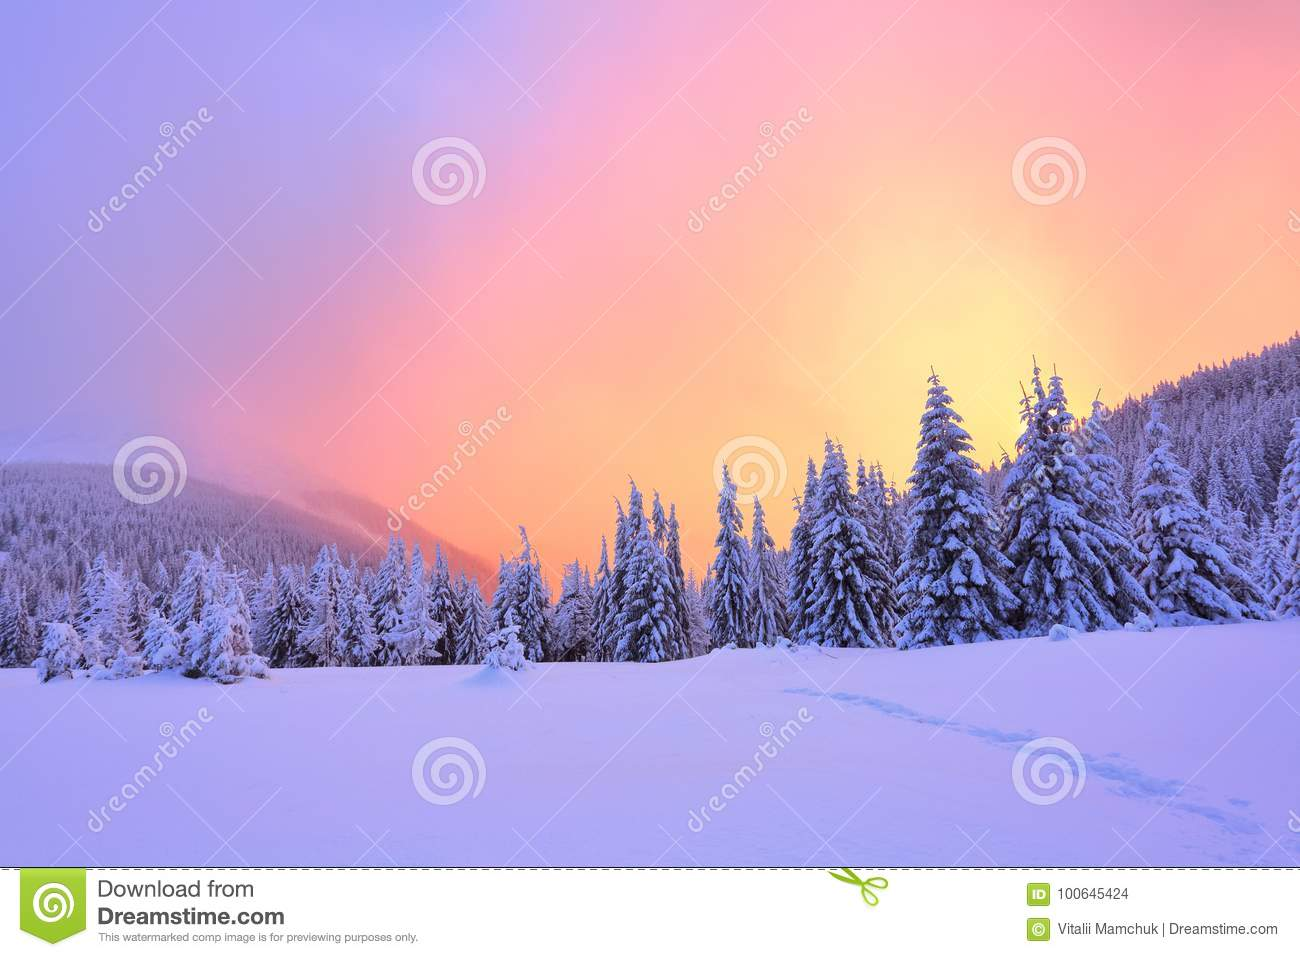 Beautiful pink sunset shine enlightens the picturesque landscapes with fair trees covered with snow.